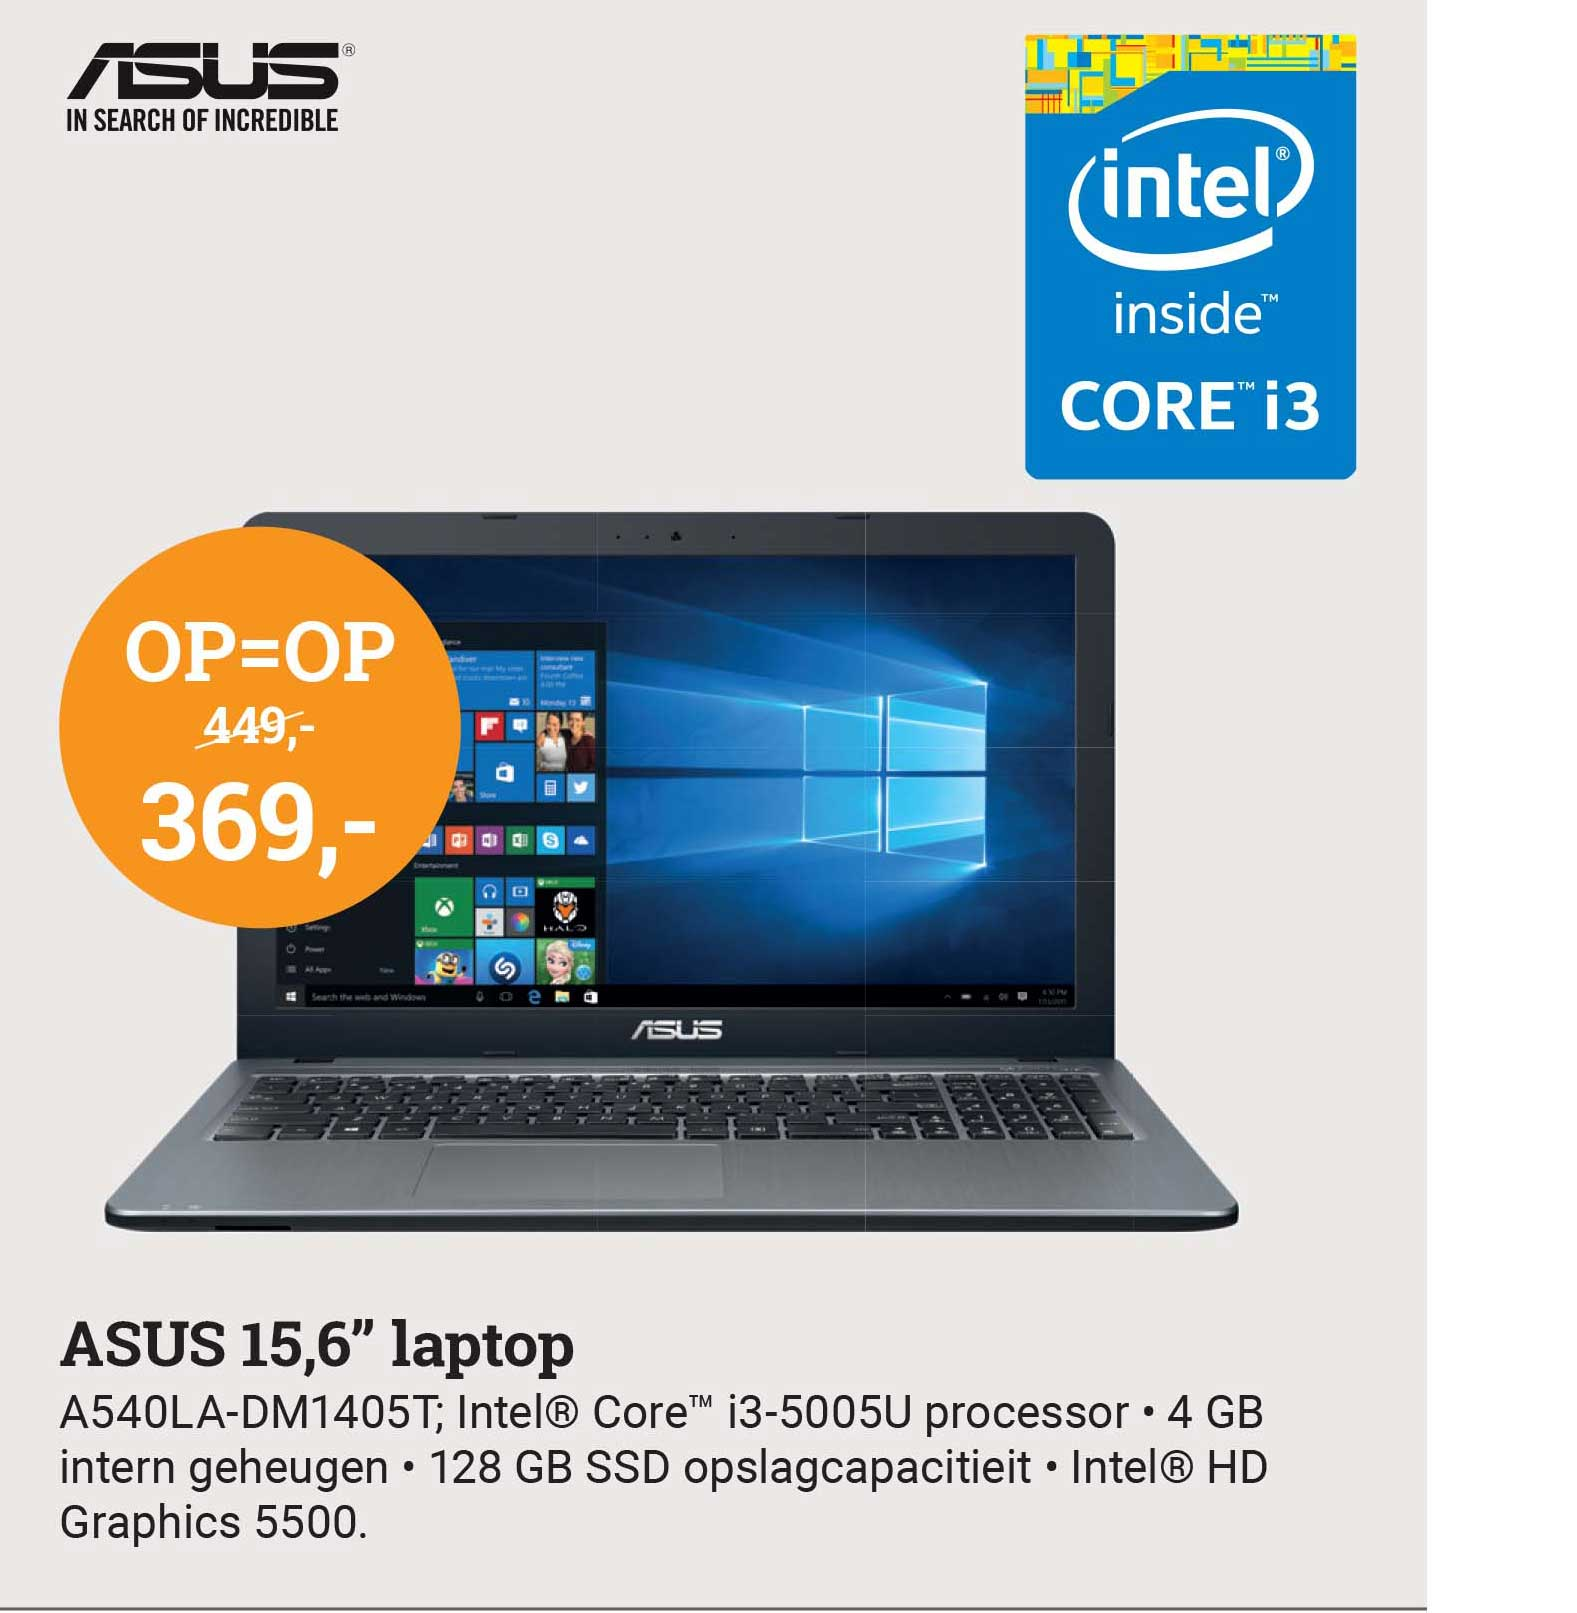 BCC Asus 15.6 Inch Laptop